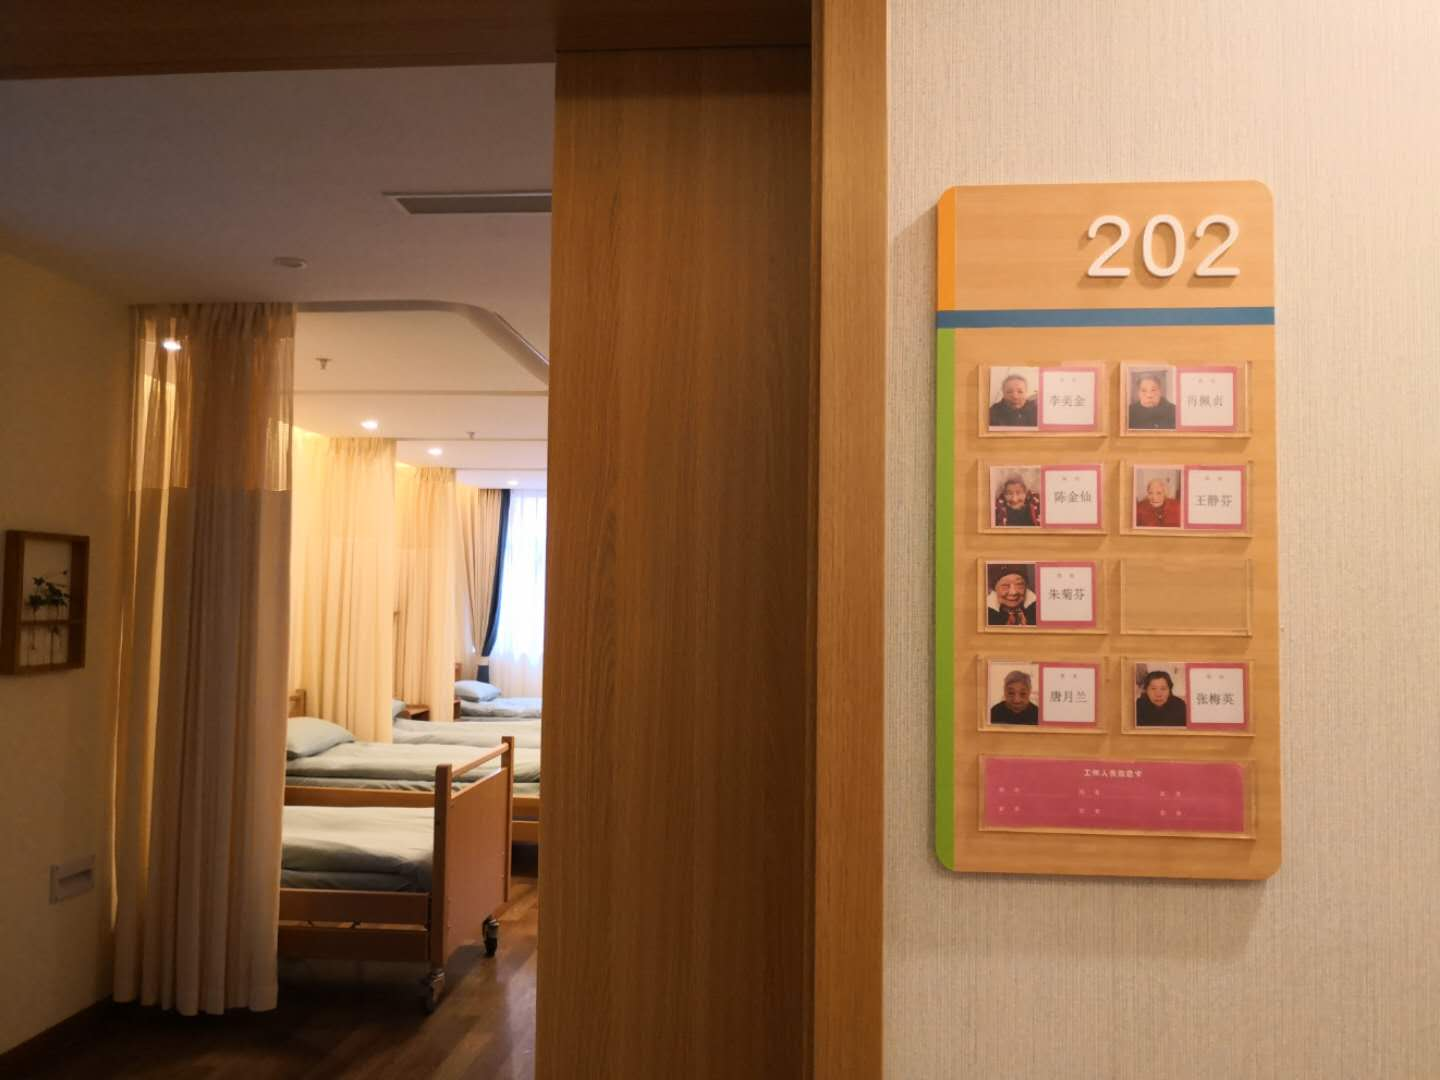 Elderly-friendly center in Shanghai creates novel plans to cope with the aging population